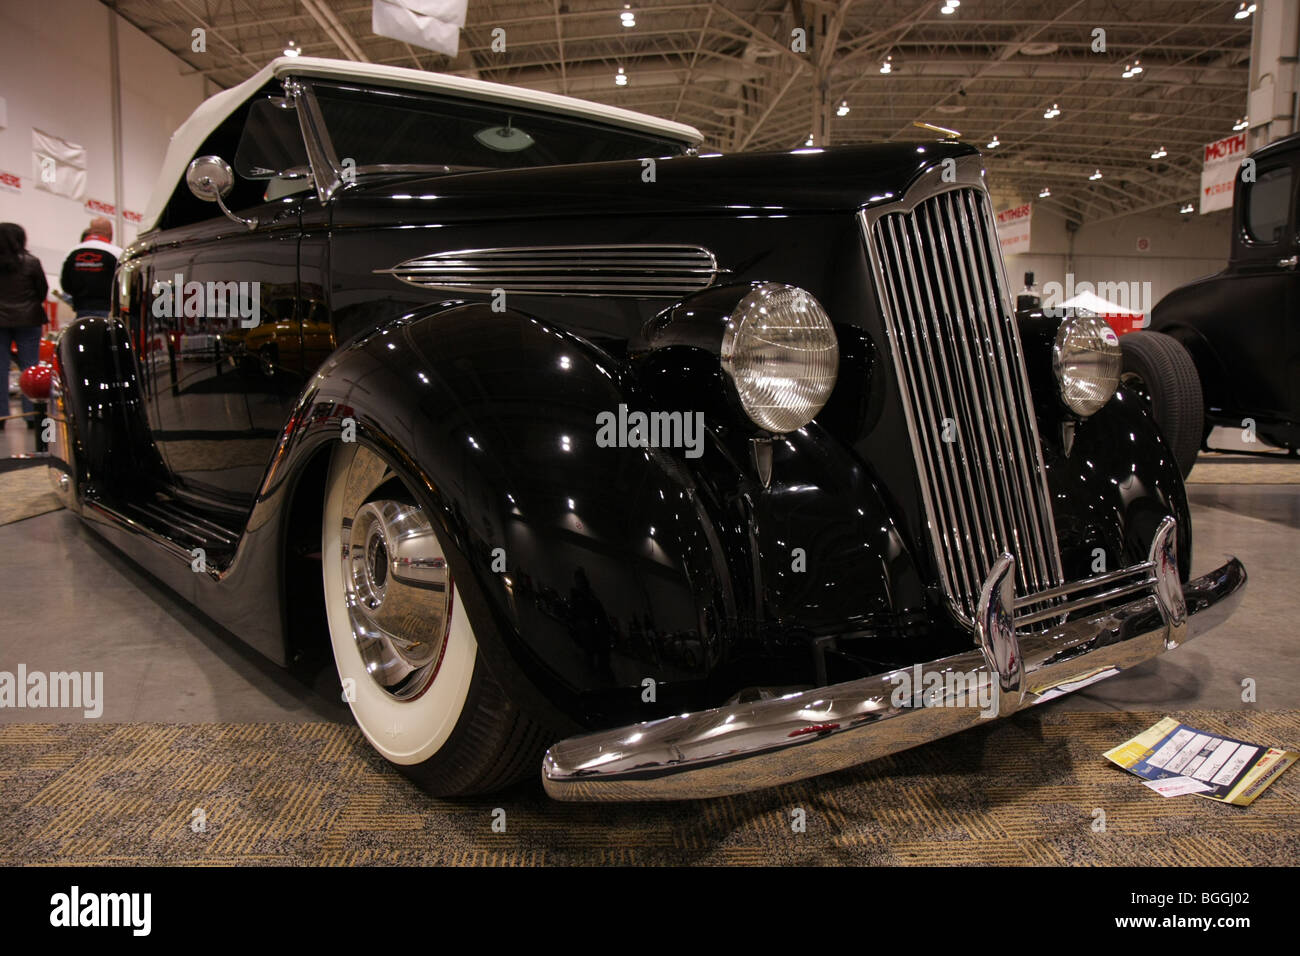 Custom vintage classic luxury black american retro cars on for Old classic american cars